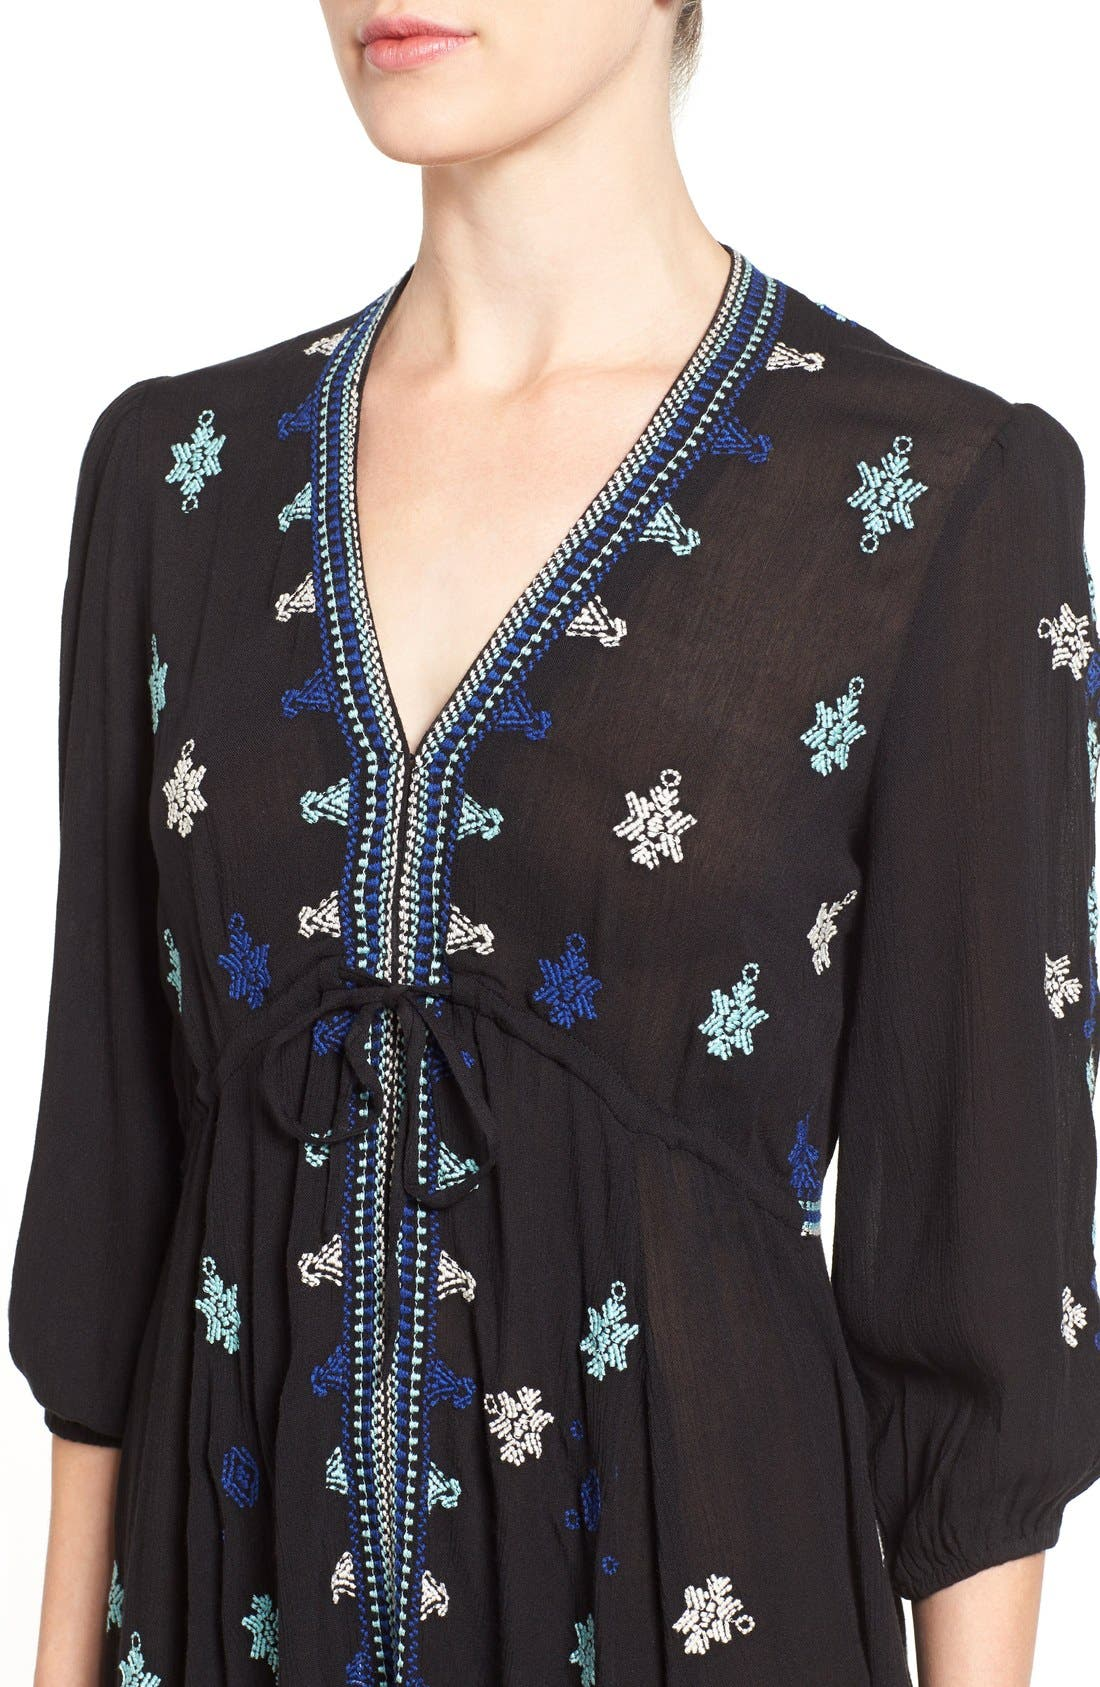 'Star Gazer' Embroidered Tunic Dress,                             Alternate thumbnail 5, color,                             001